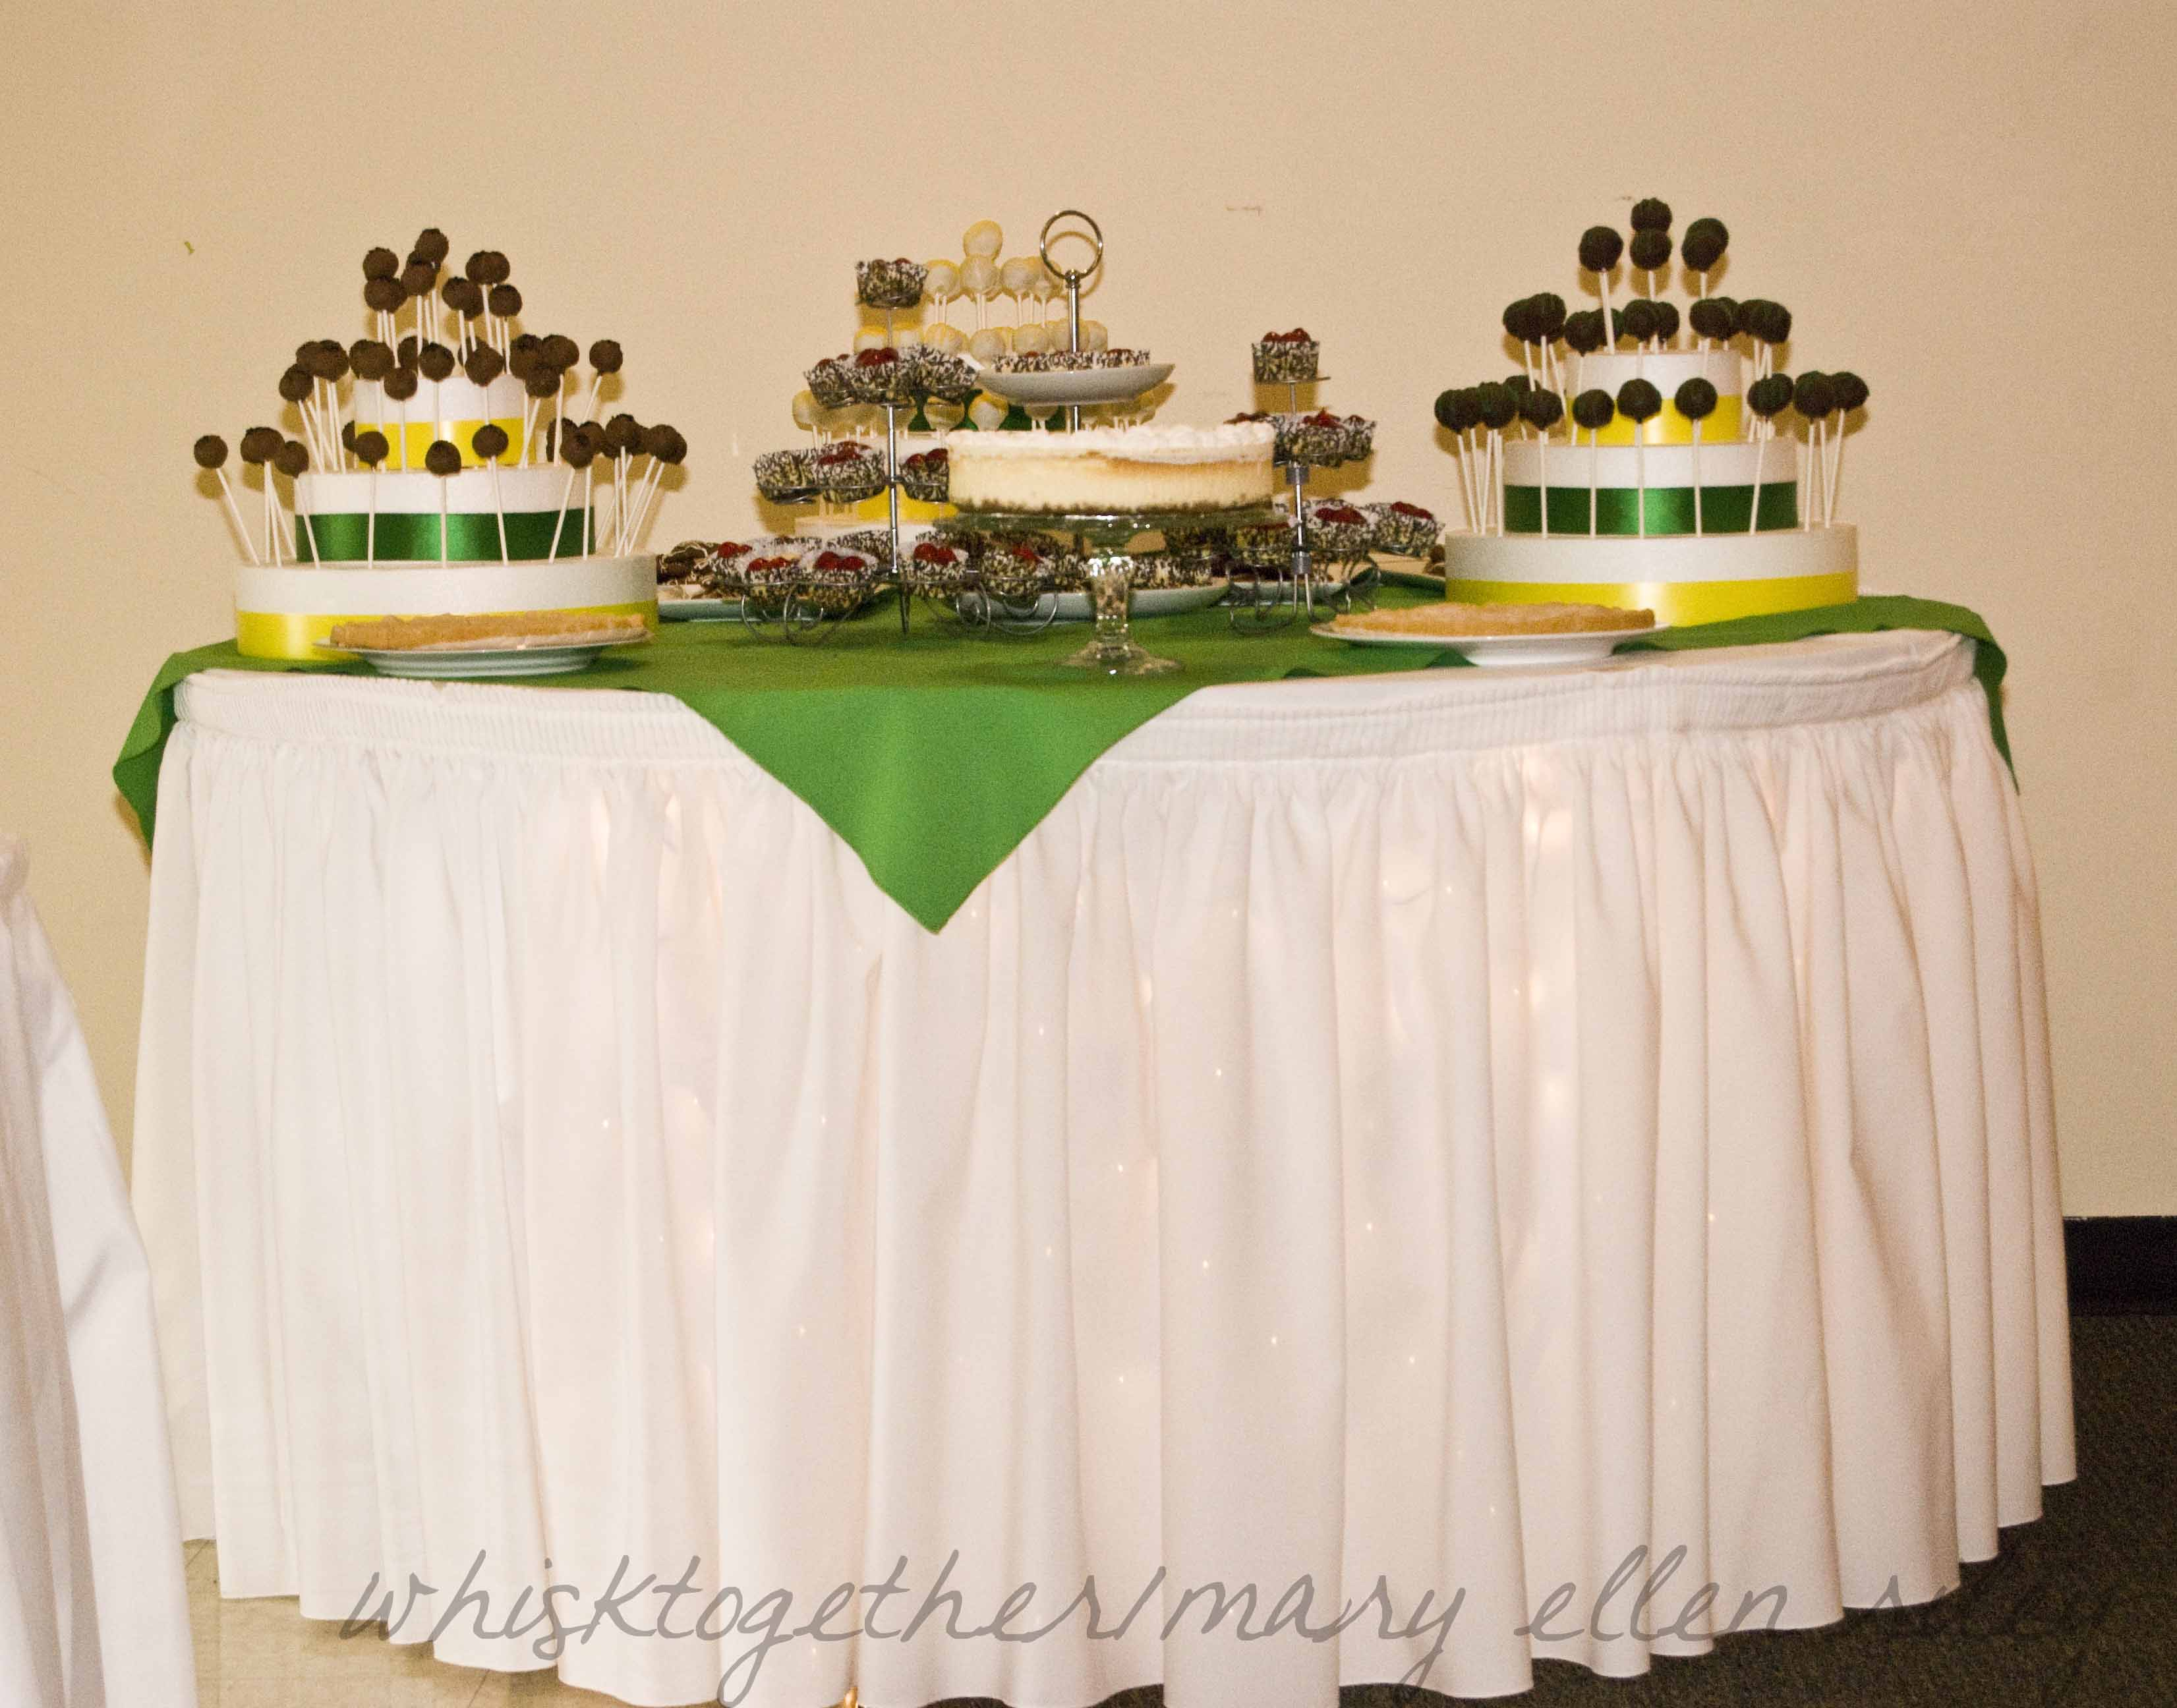 Cake Pop Stand And Dessert Buffet For Weddings Showers Parties